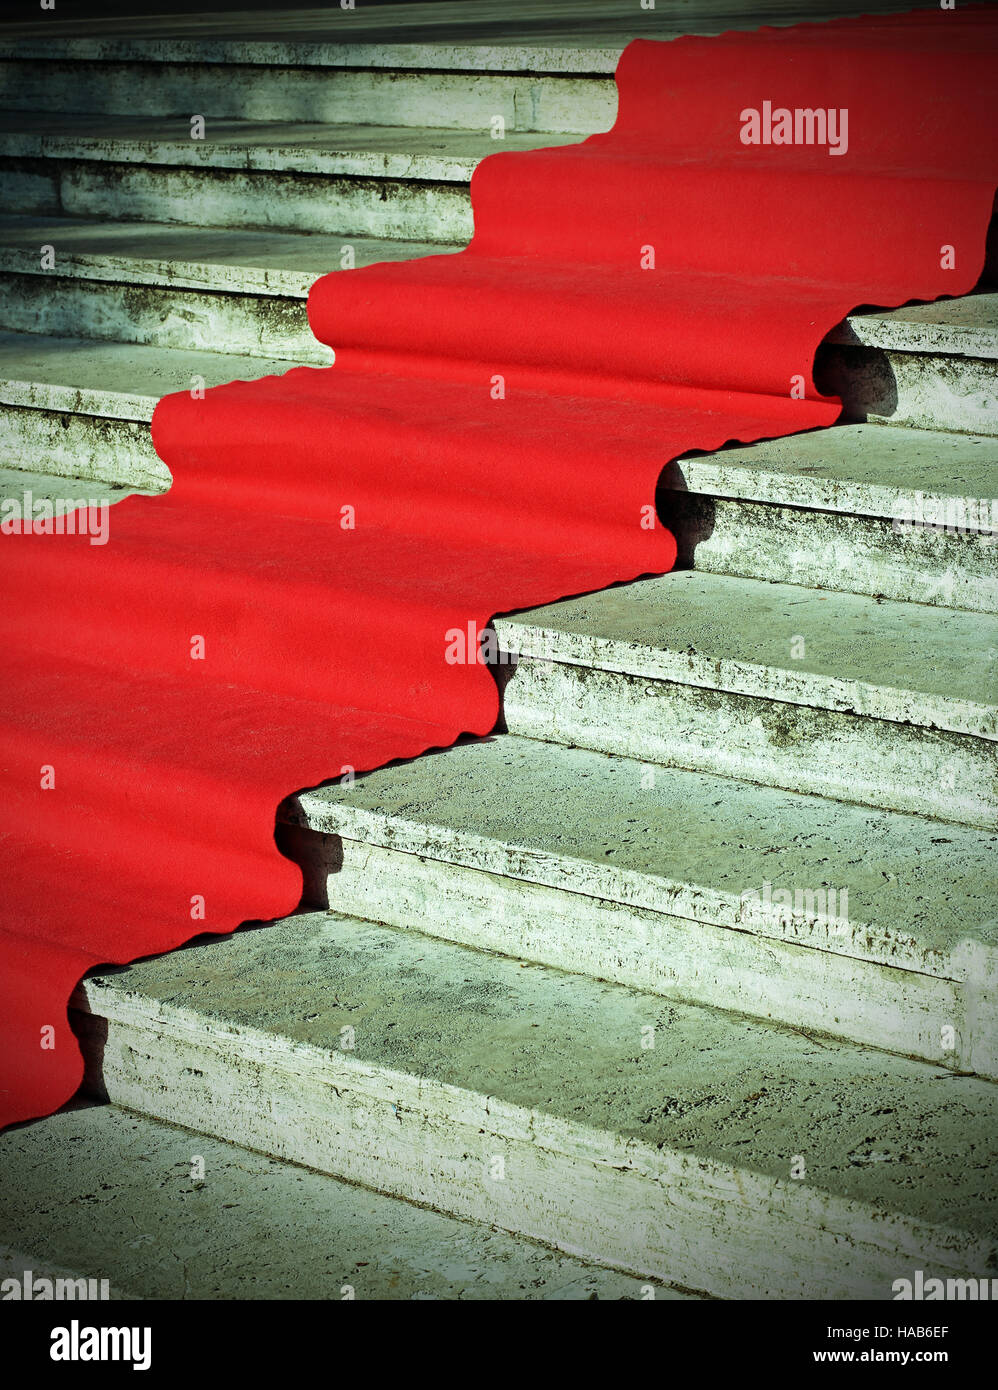 elegant long red carpet on the stairs at the vip fashion event - Stock Image